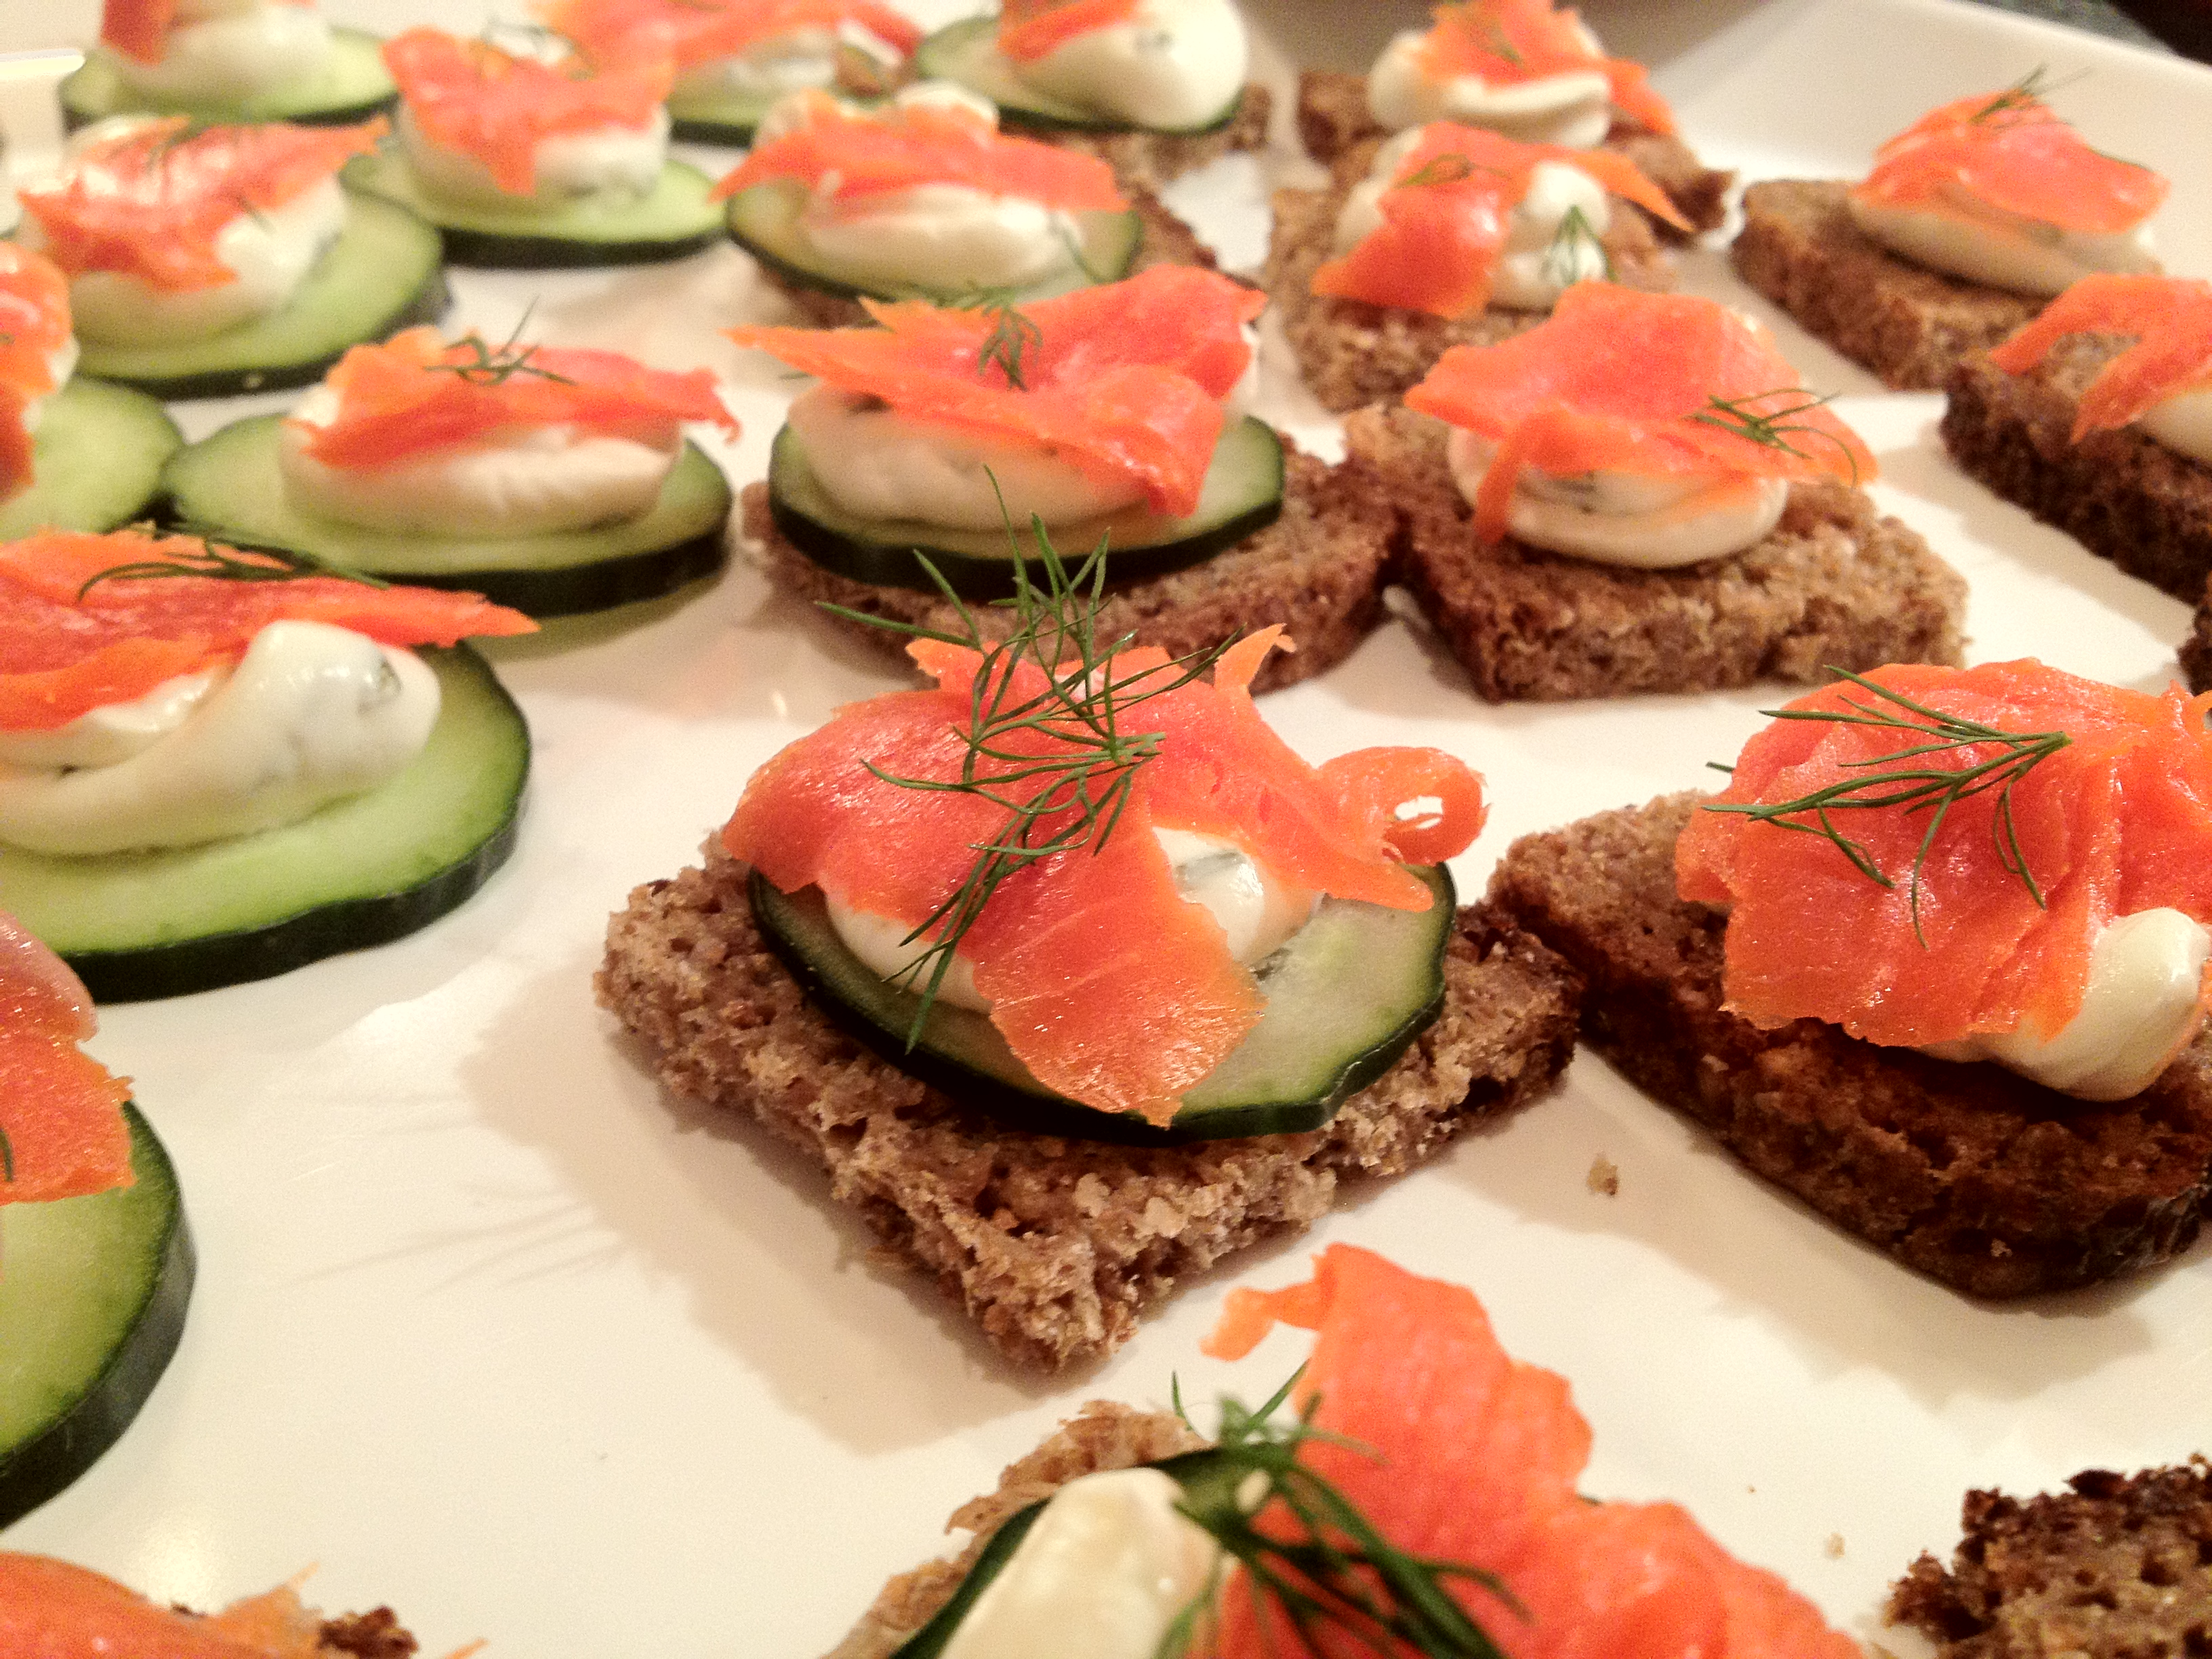 Smoked Salmon Canapes Recipes Images | Crazy Gallery